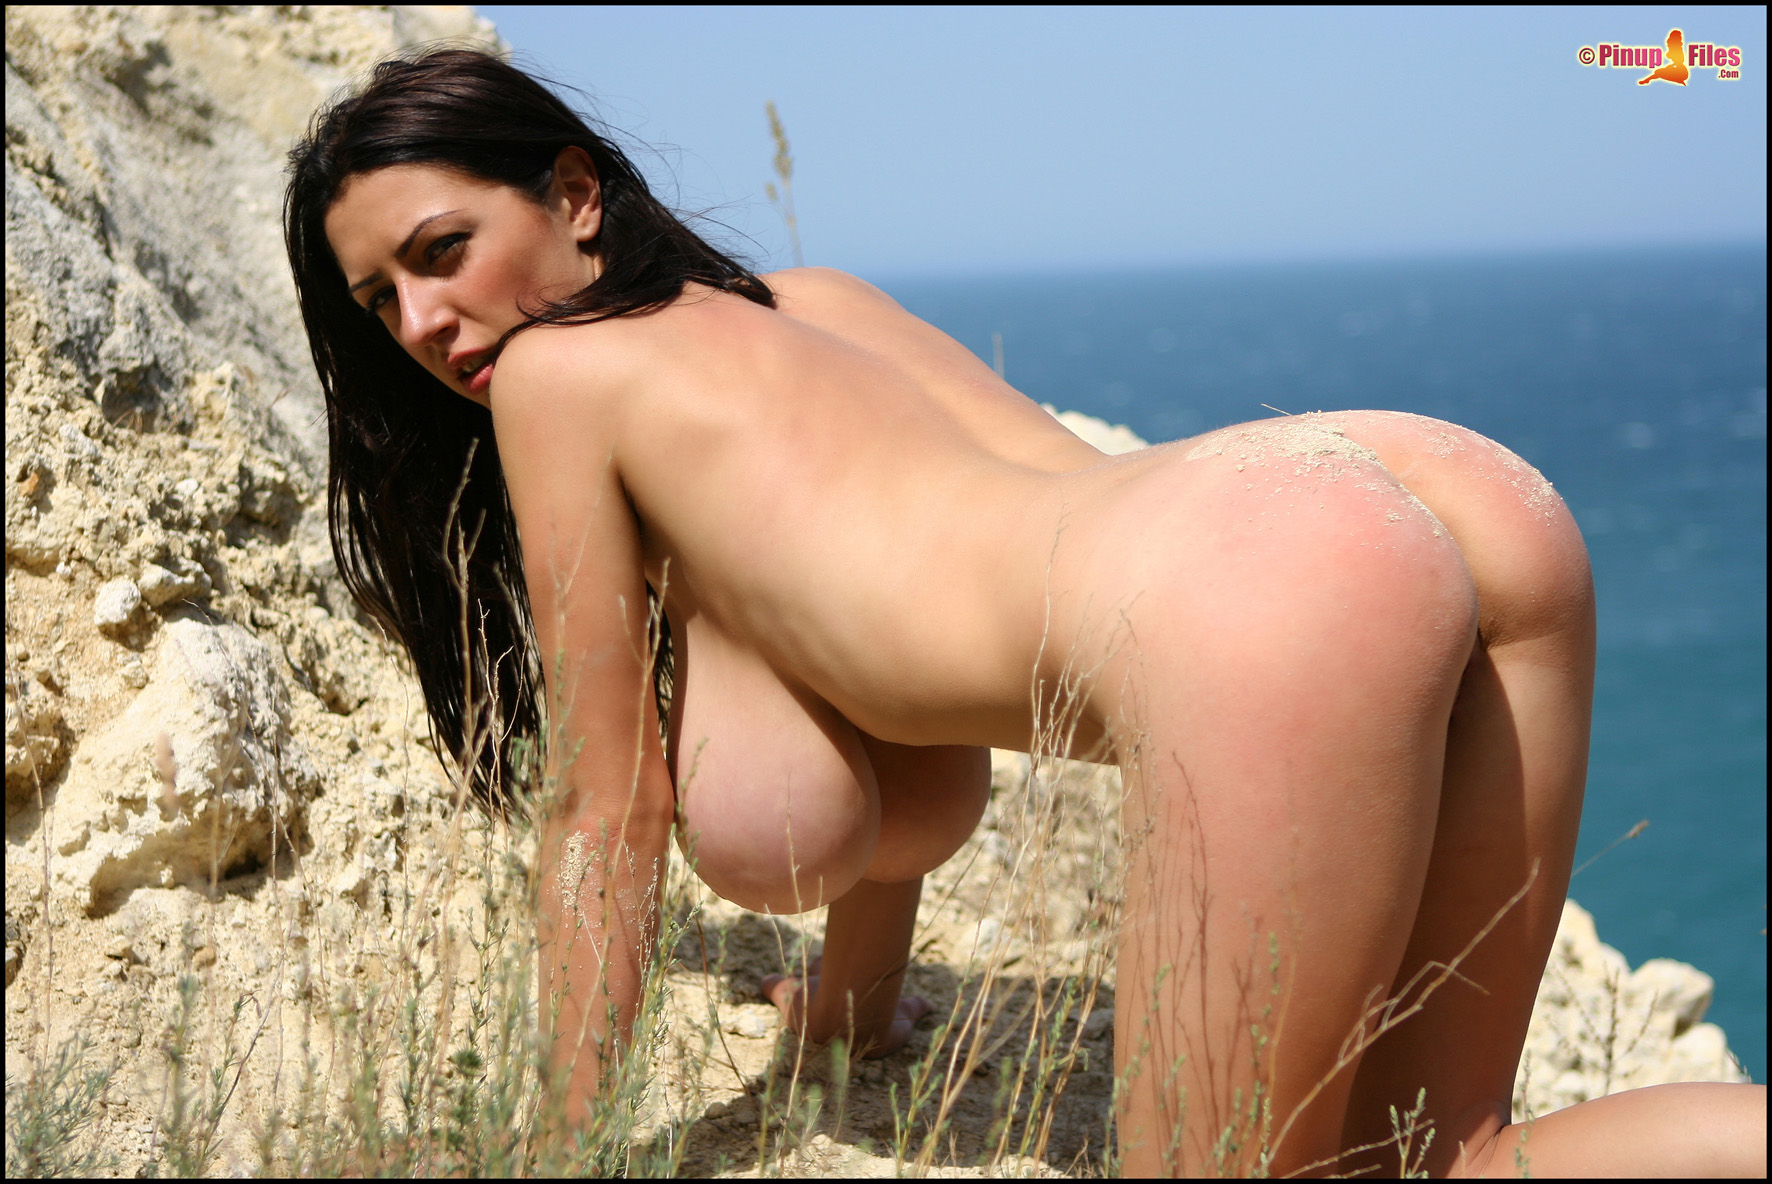 Ass, Beach, Big Tits, Black Hair, Ivory, Long Hair, Outdoors, Solo picture